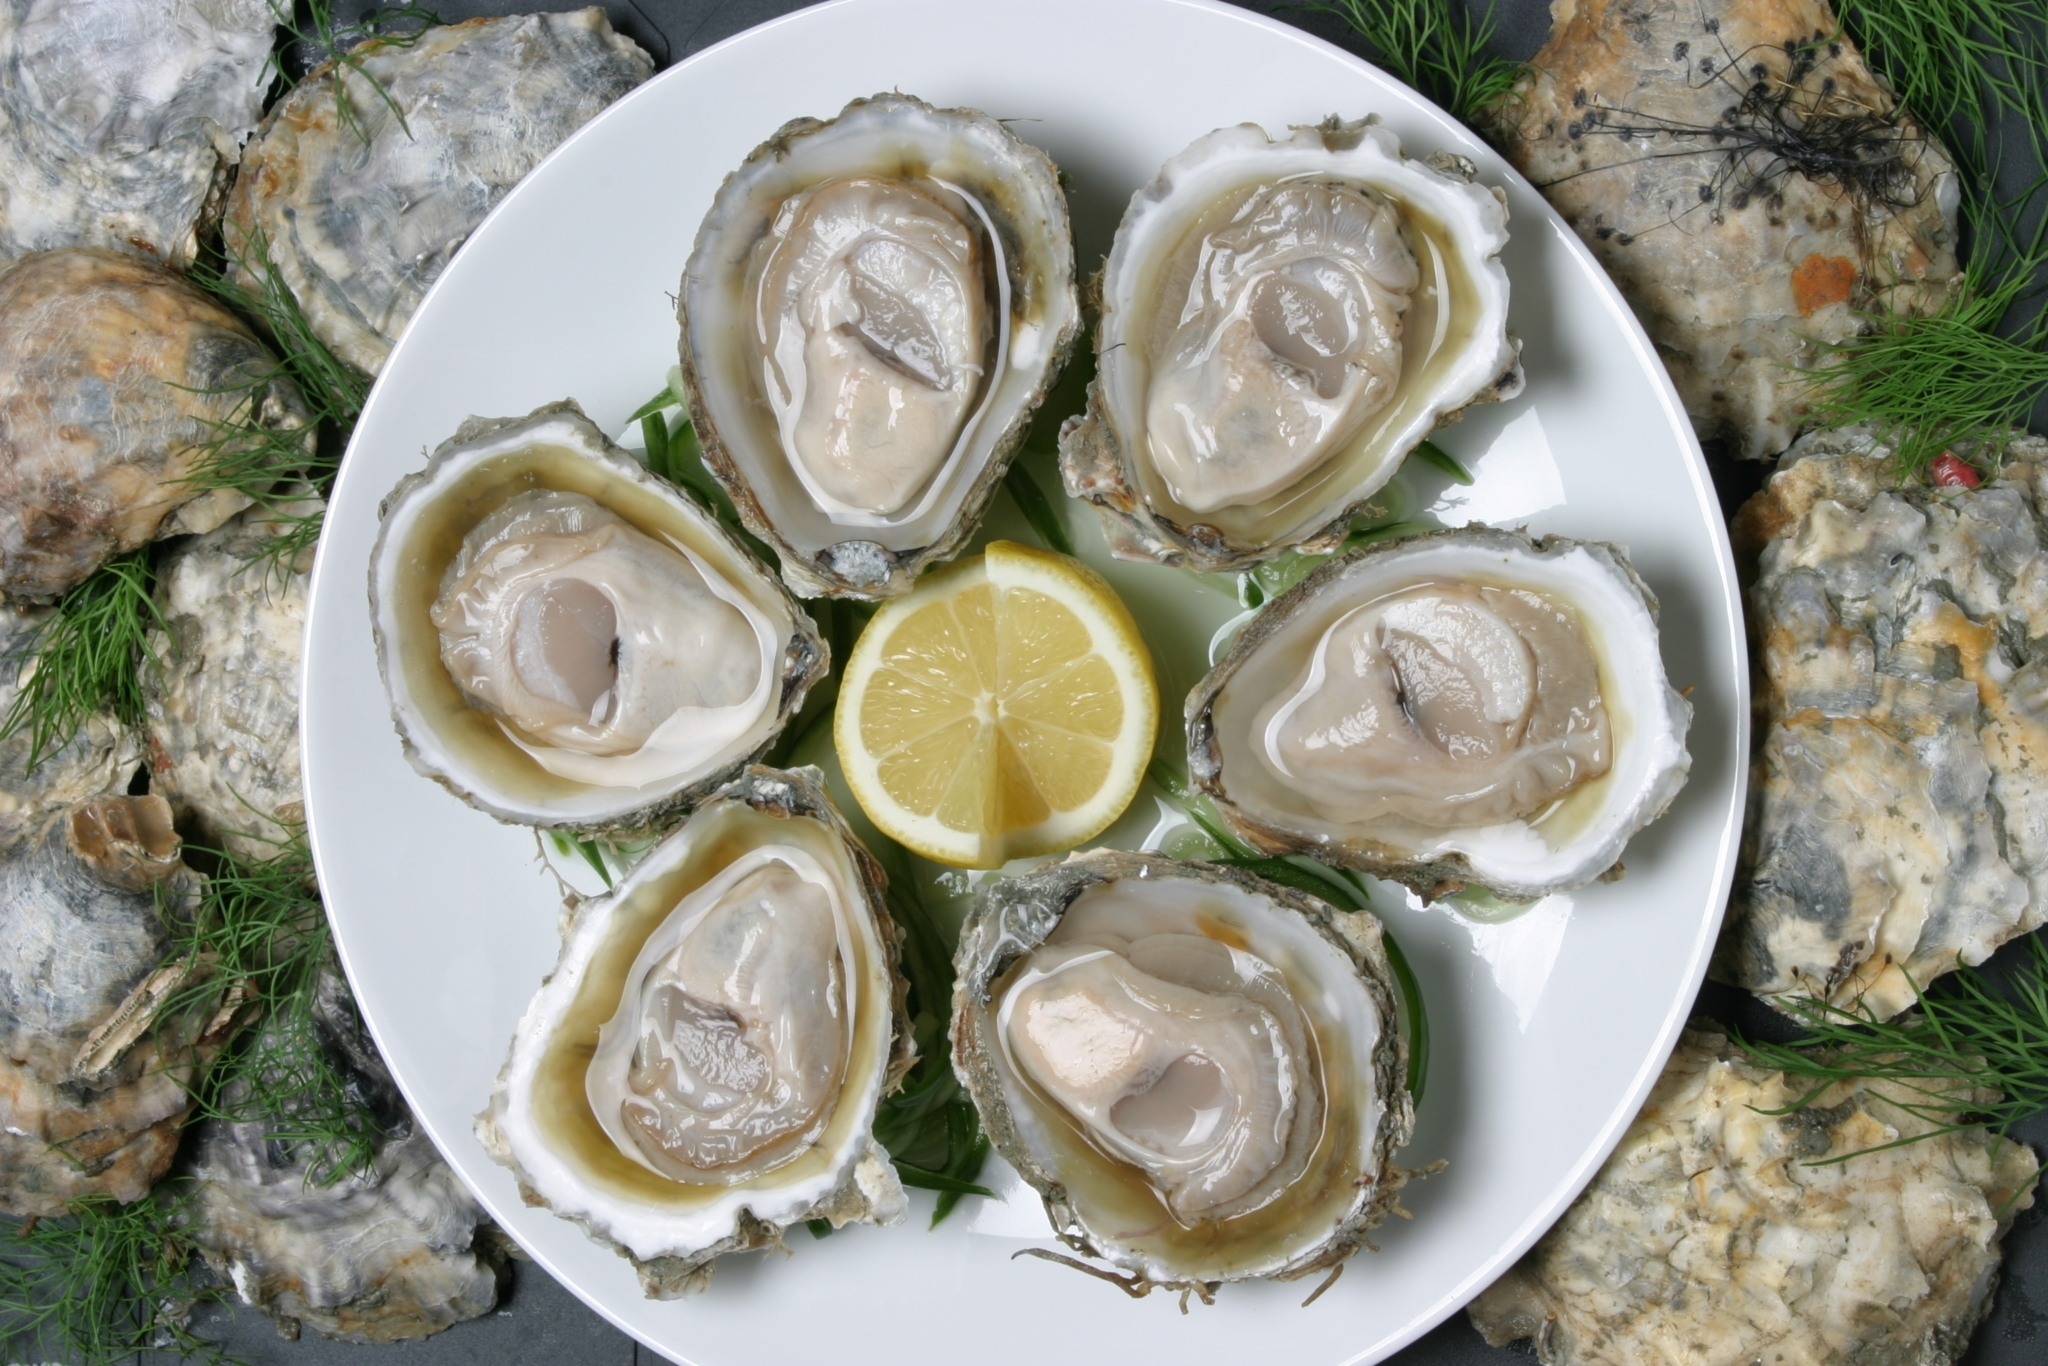 004 Oysters